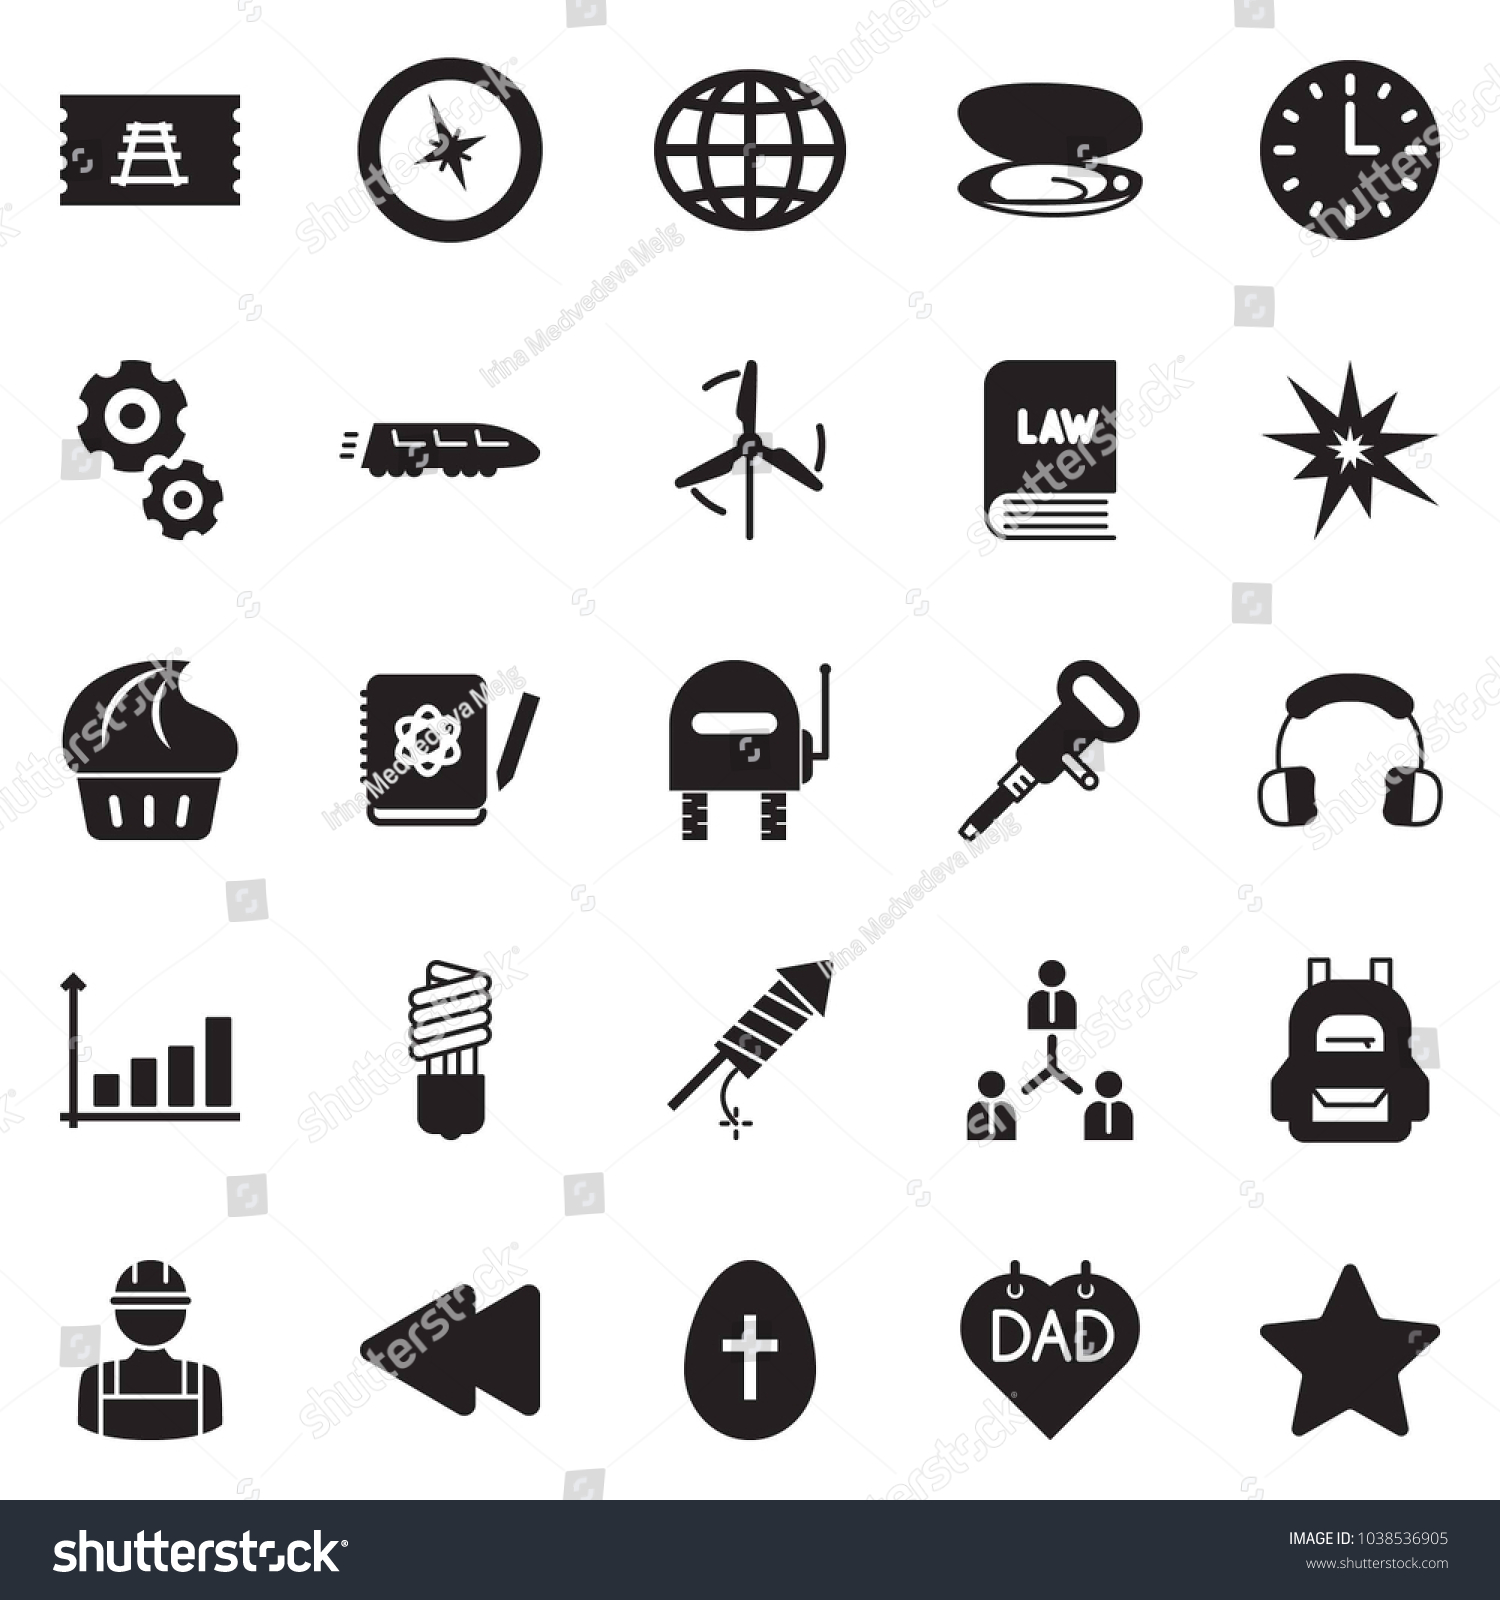 Solid black vector icon set bulb stock vector 1038536905 shutterstock solid black vector icon set bulb vector growth chart team law nvjuhfo Choice Image